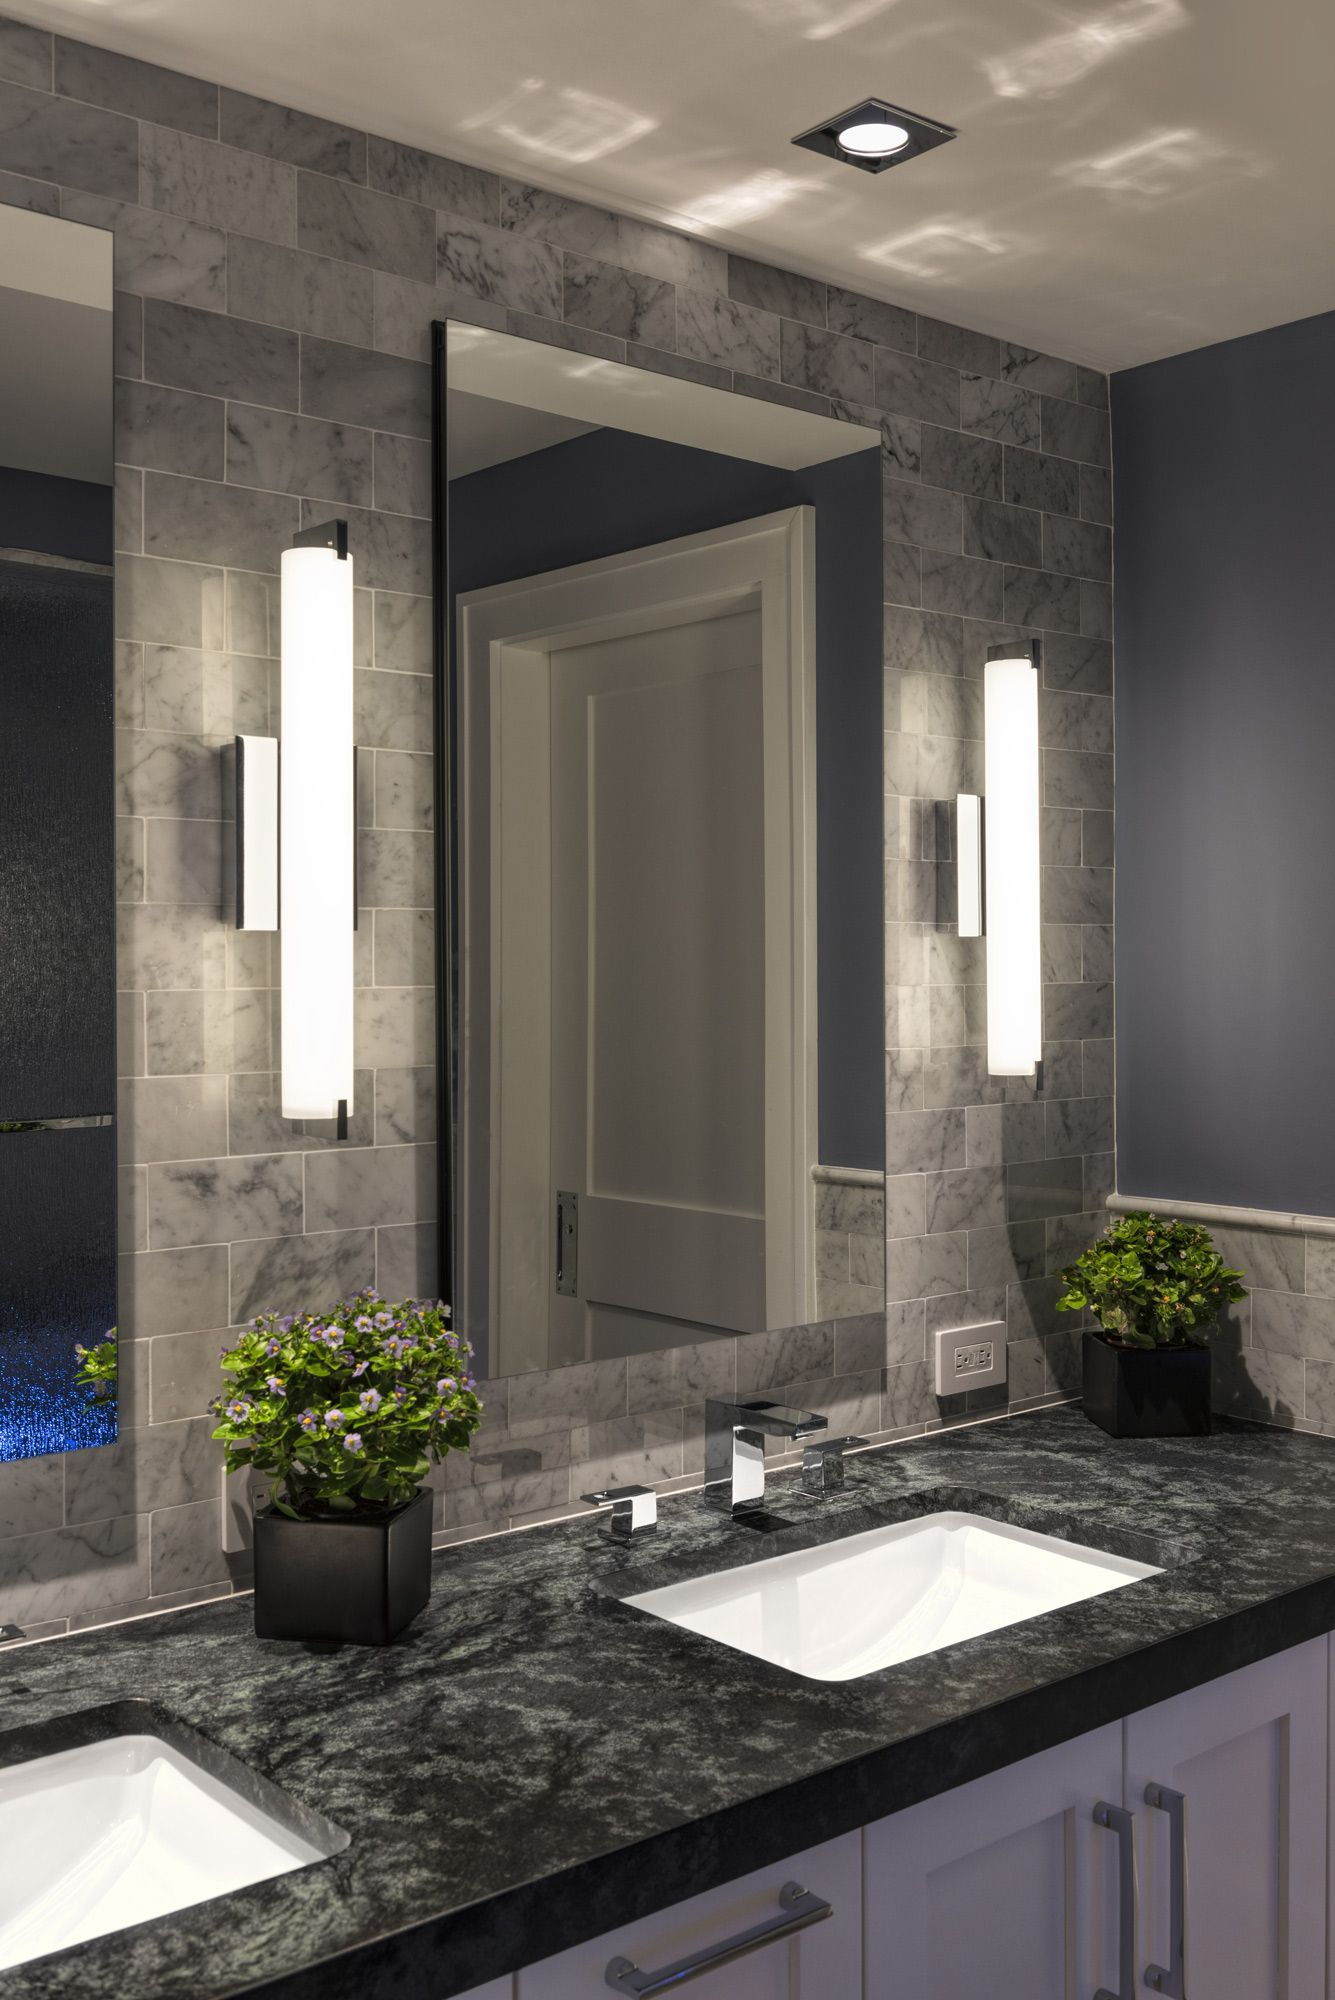 Best Bathroom Lighting Installation Gallery Bathroom Lighting Bathroom Lighting